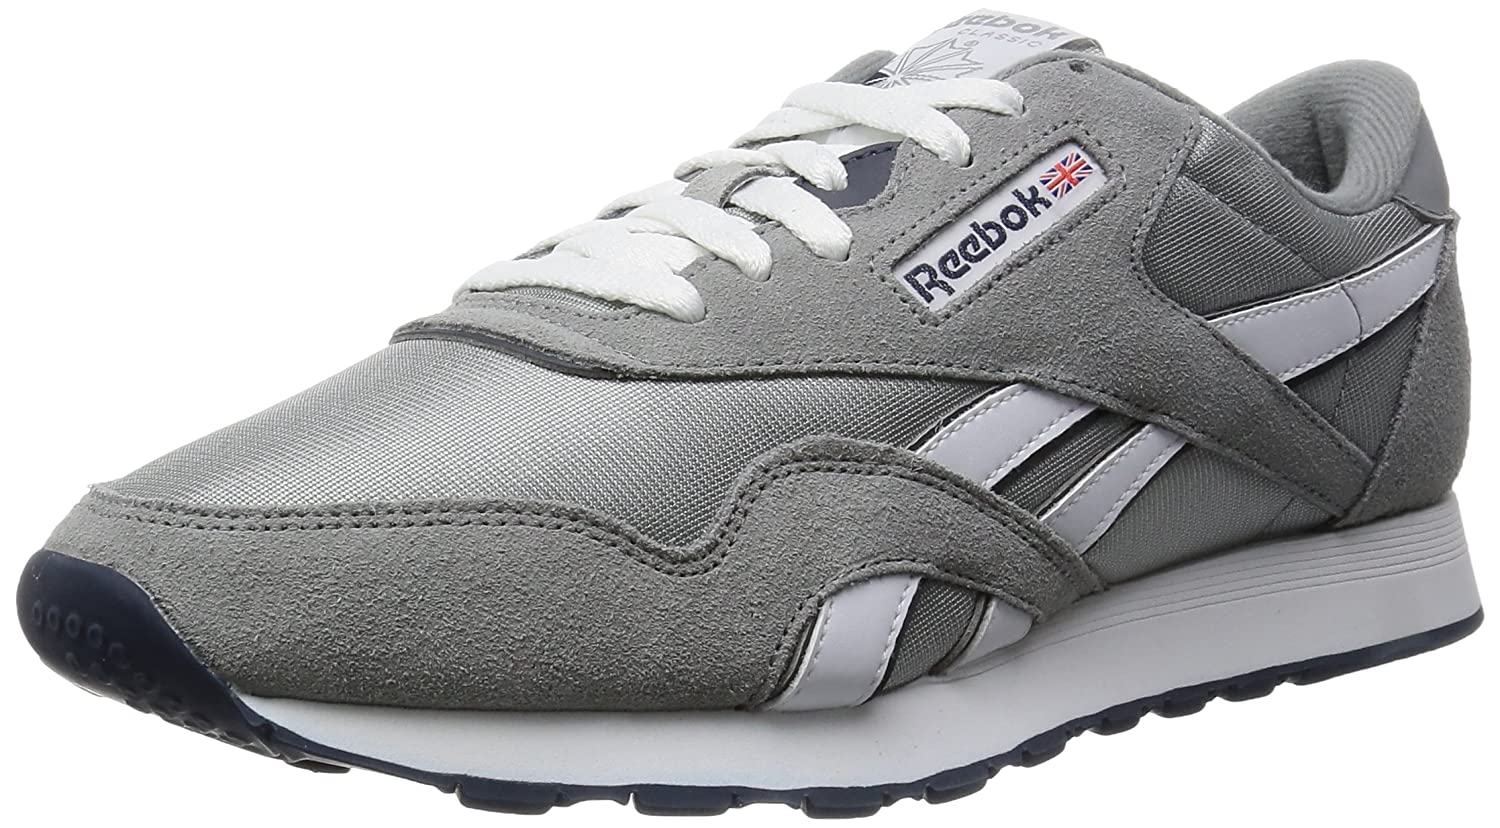 Grey (Platinum Jet bluee) Reebok Men's Classic Nylon Gymnastics shoes, White Light Grey, 6 UK 39 EU